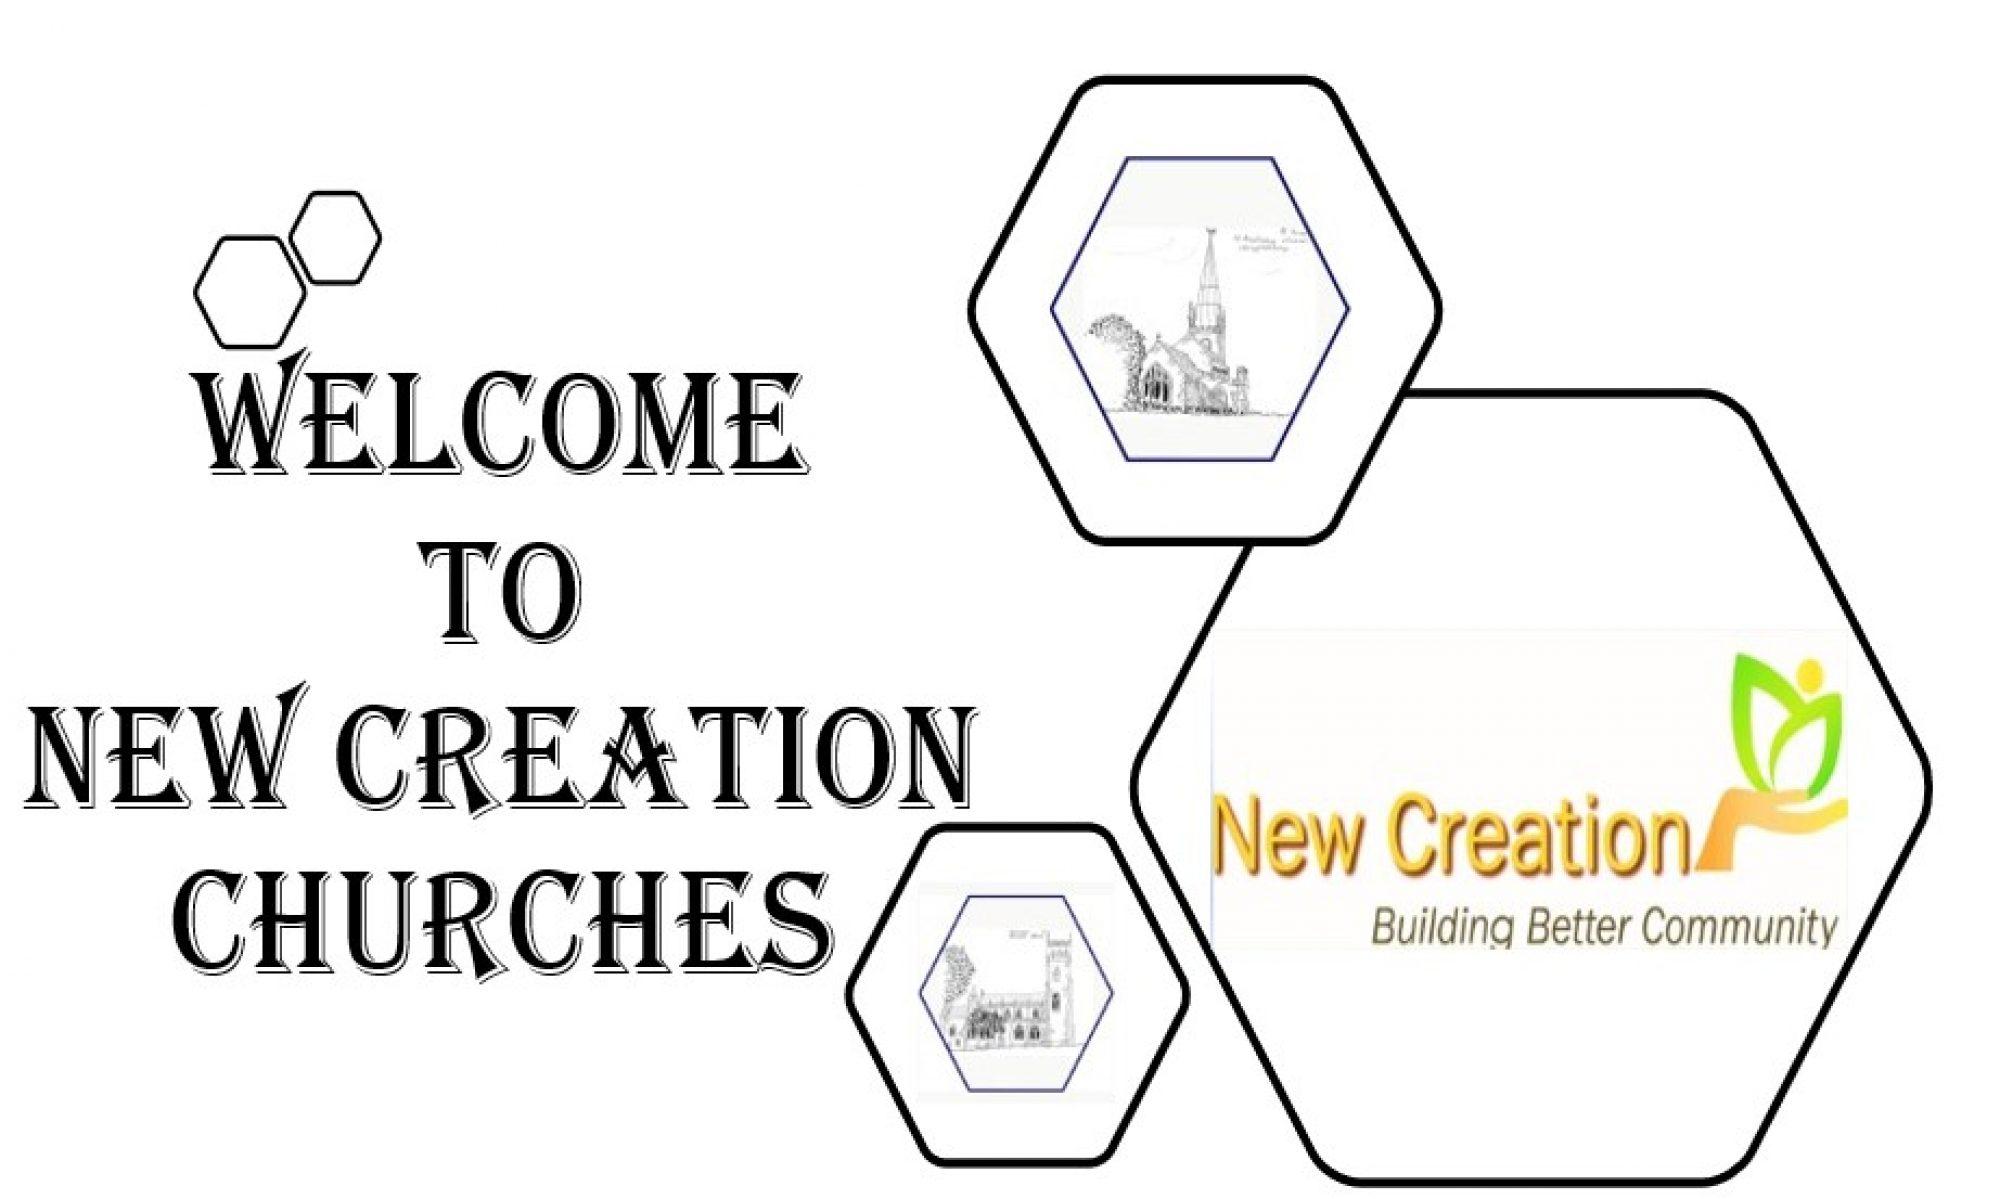 New Creation Churches